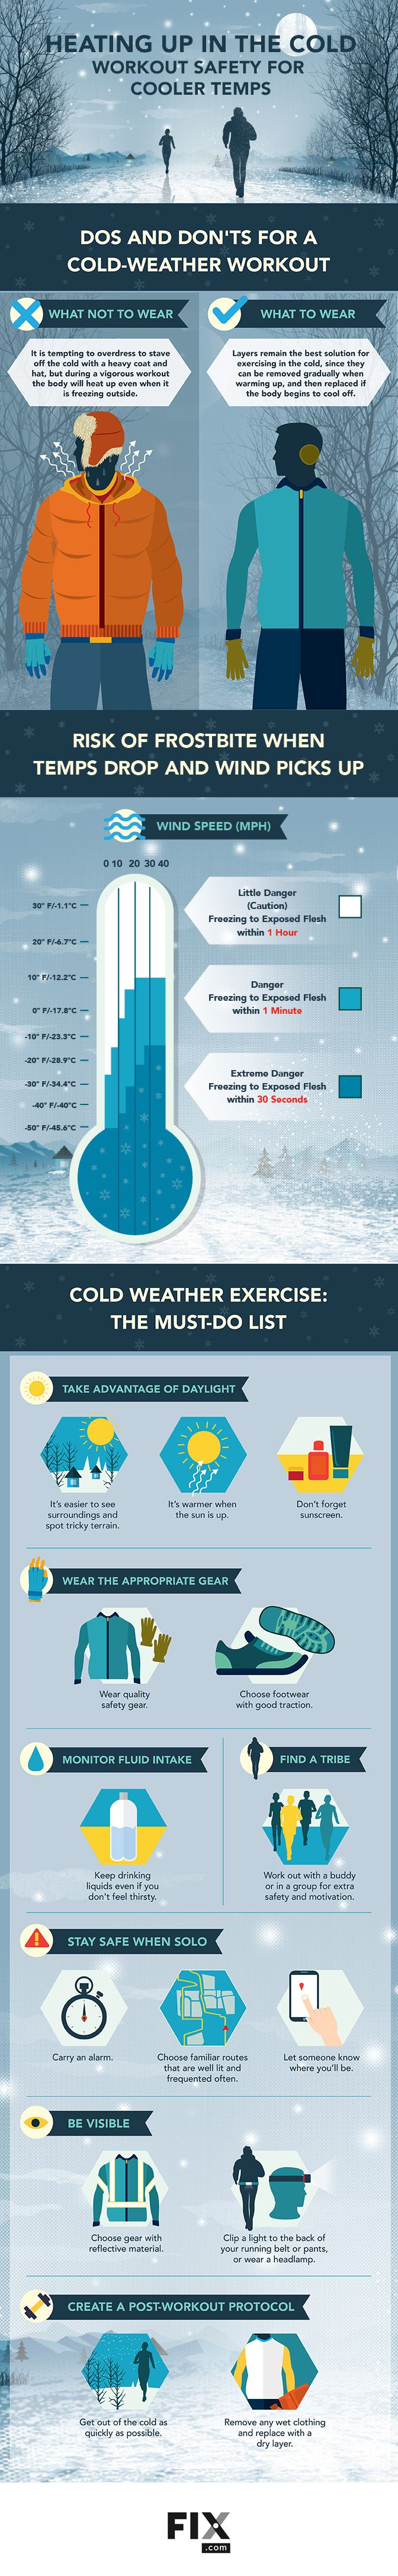 Stay safe and fit this winter with this guide to working out in cold weather. #exercise -http://www.fix.com/blog/working-out-in-cold-weather/